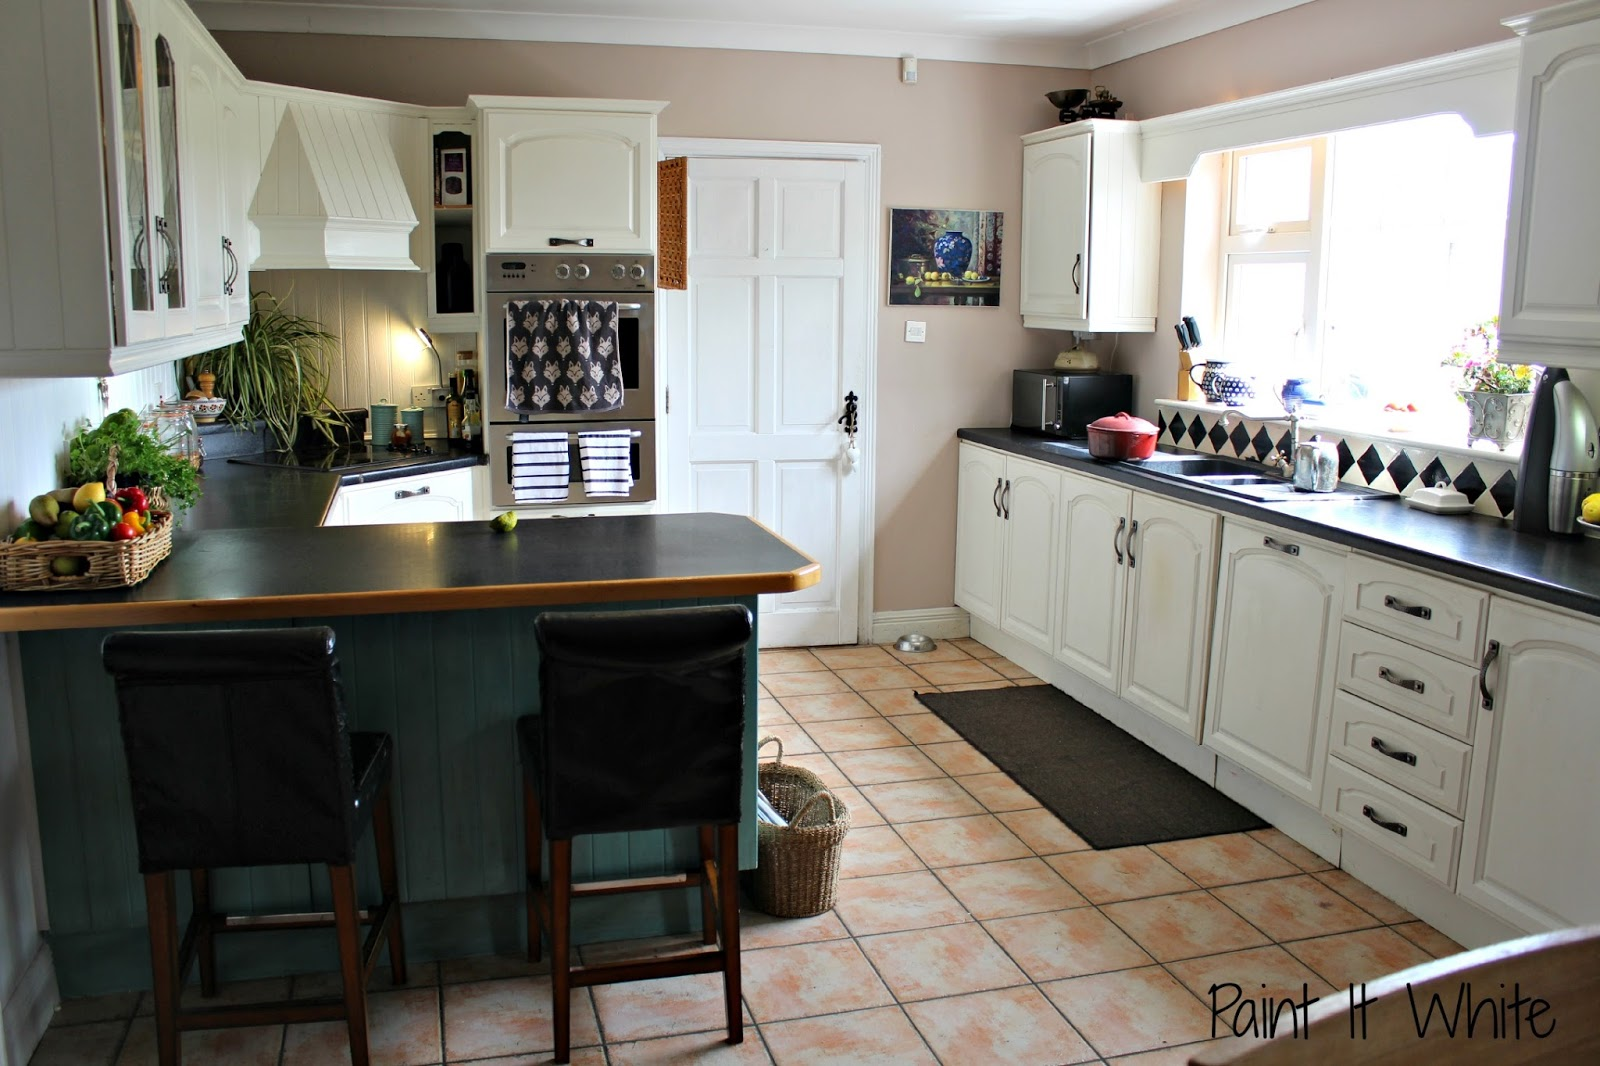 Kitchen cabinets painted dark grey - The Peninsula Is Annie Sloan Provence With Dark Wax But I Am Changing It To A Dark Grey Like The French Doors And I Would Love Liscannor Slate Tiles For The